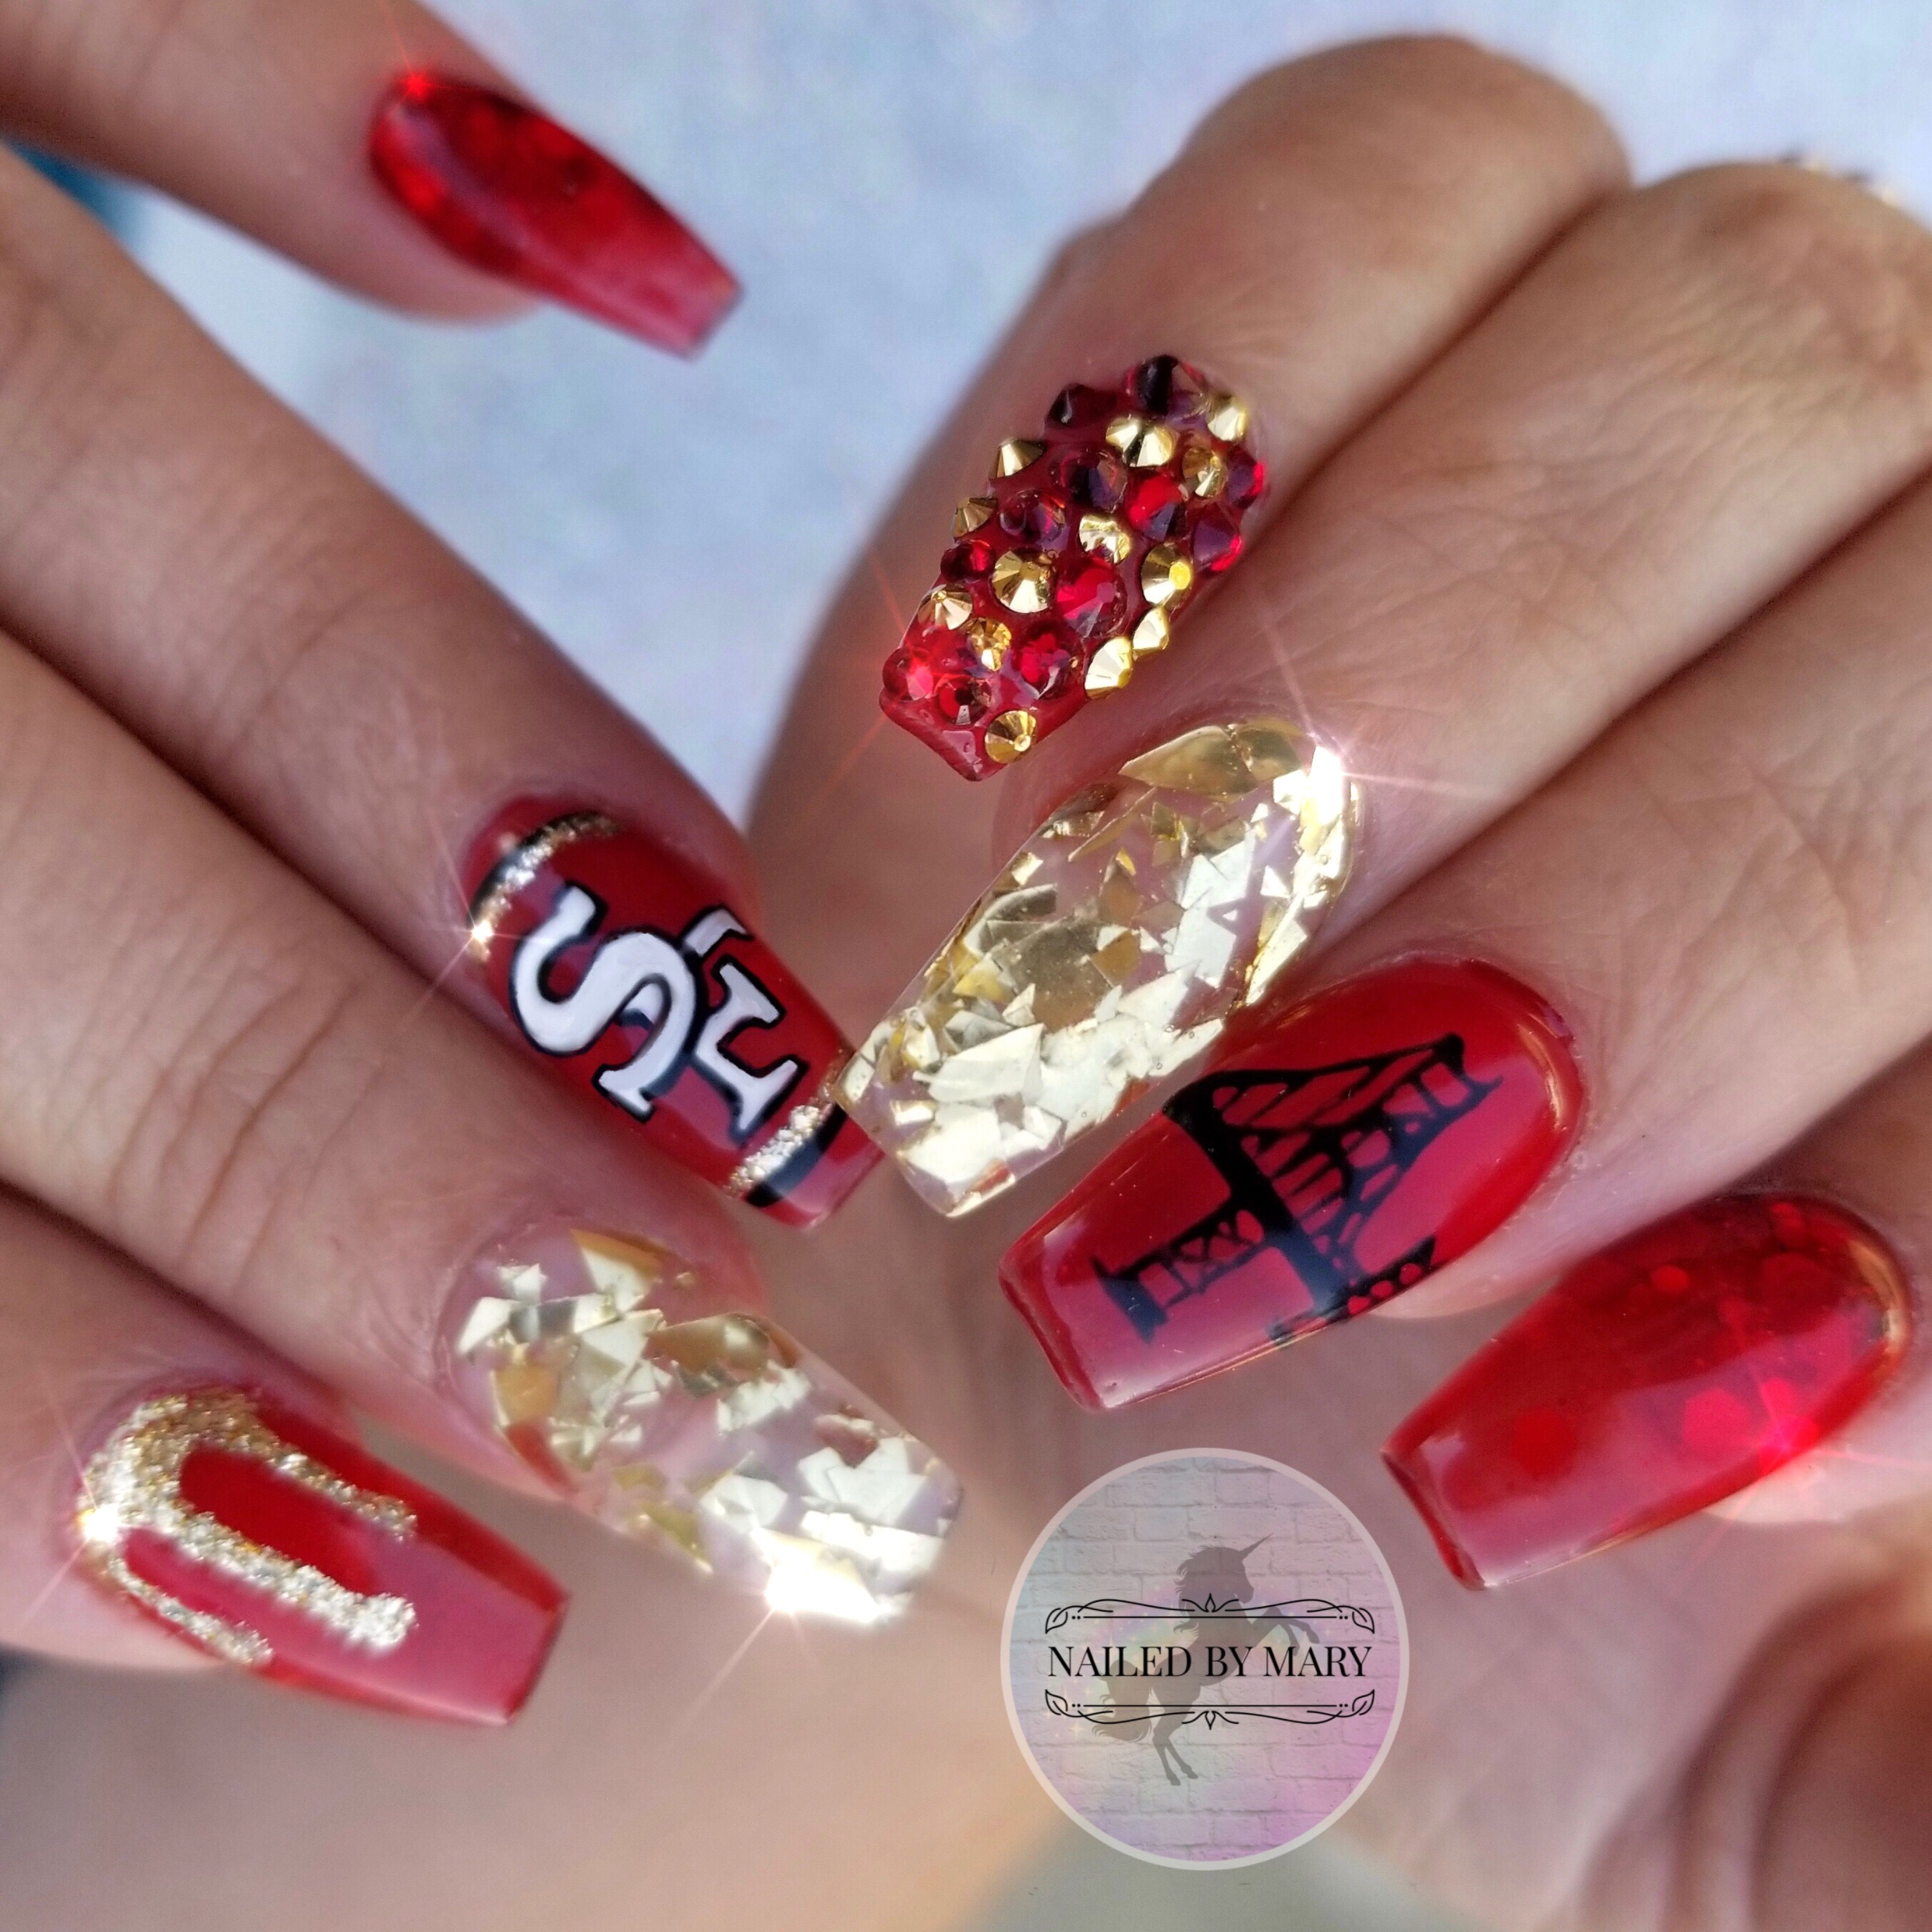 San Francisco S 49ers Nails Golden Gate Bridge Red And Gold Jelly Glitter Football Team The Bay Swarovski Crystals Frisco 49ers Nails Nails Red And Gold Nails